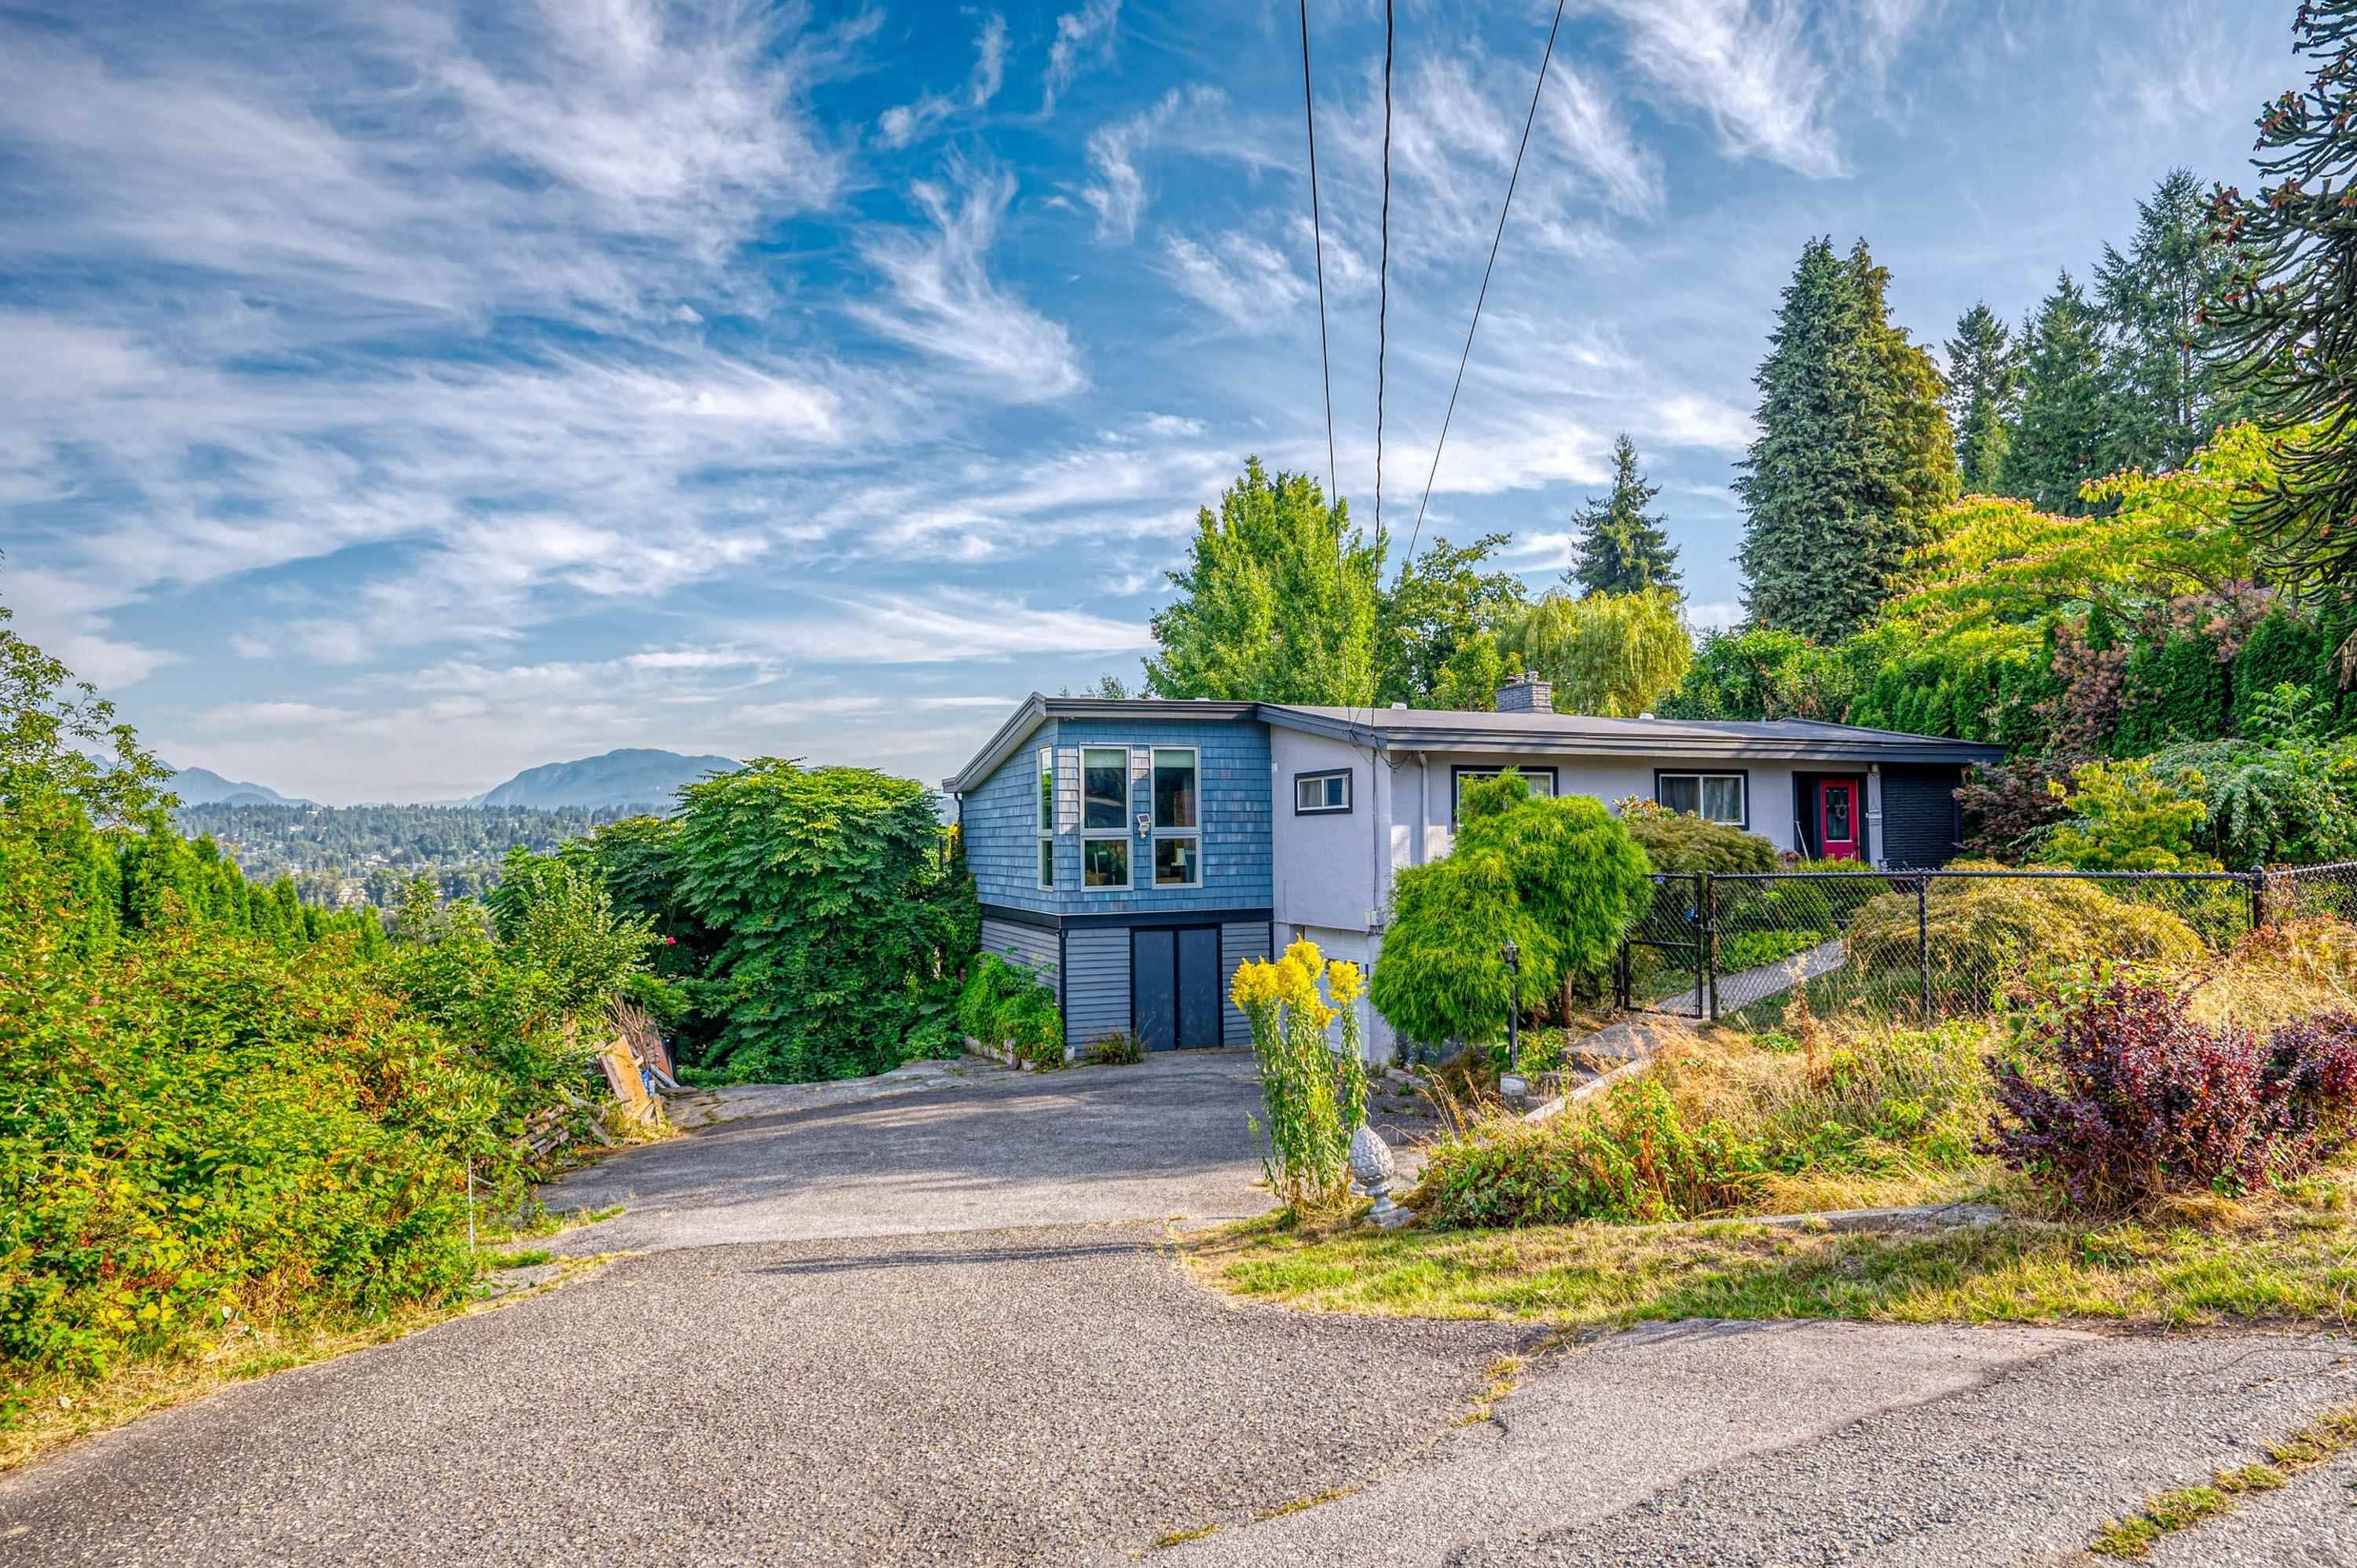 Main Photo: 13909 115 Avenue in Surrey: Bolivar Heights House for sale (North Surrey)  : MLS®# R2615391